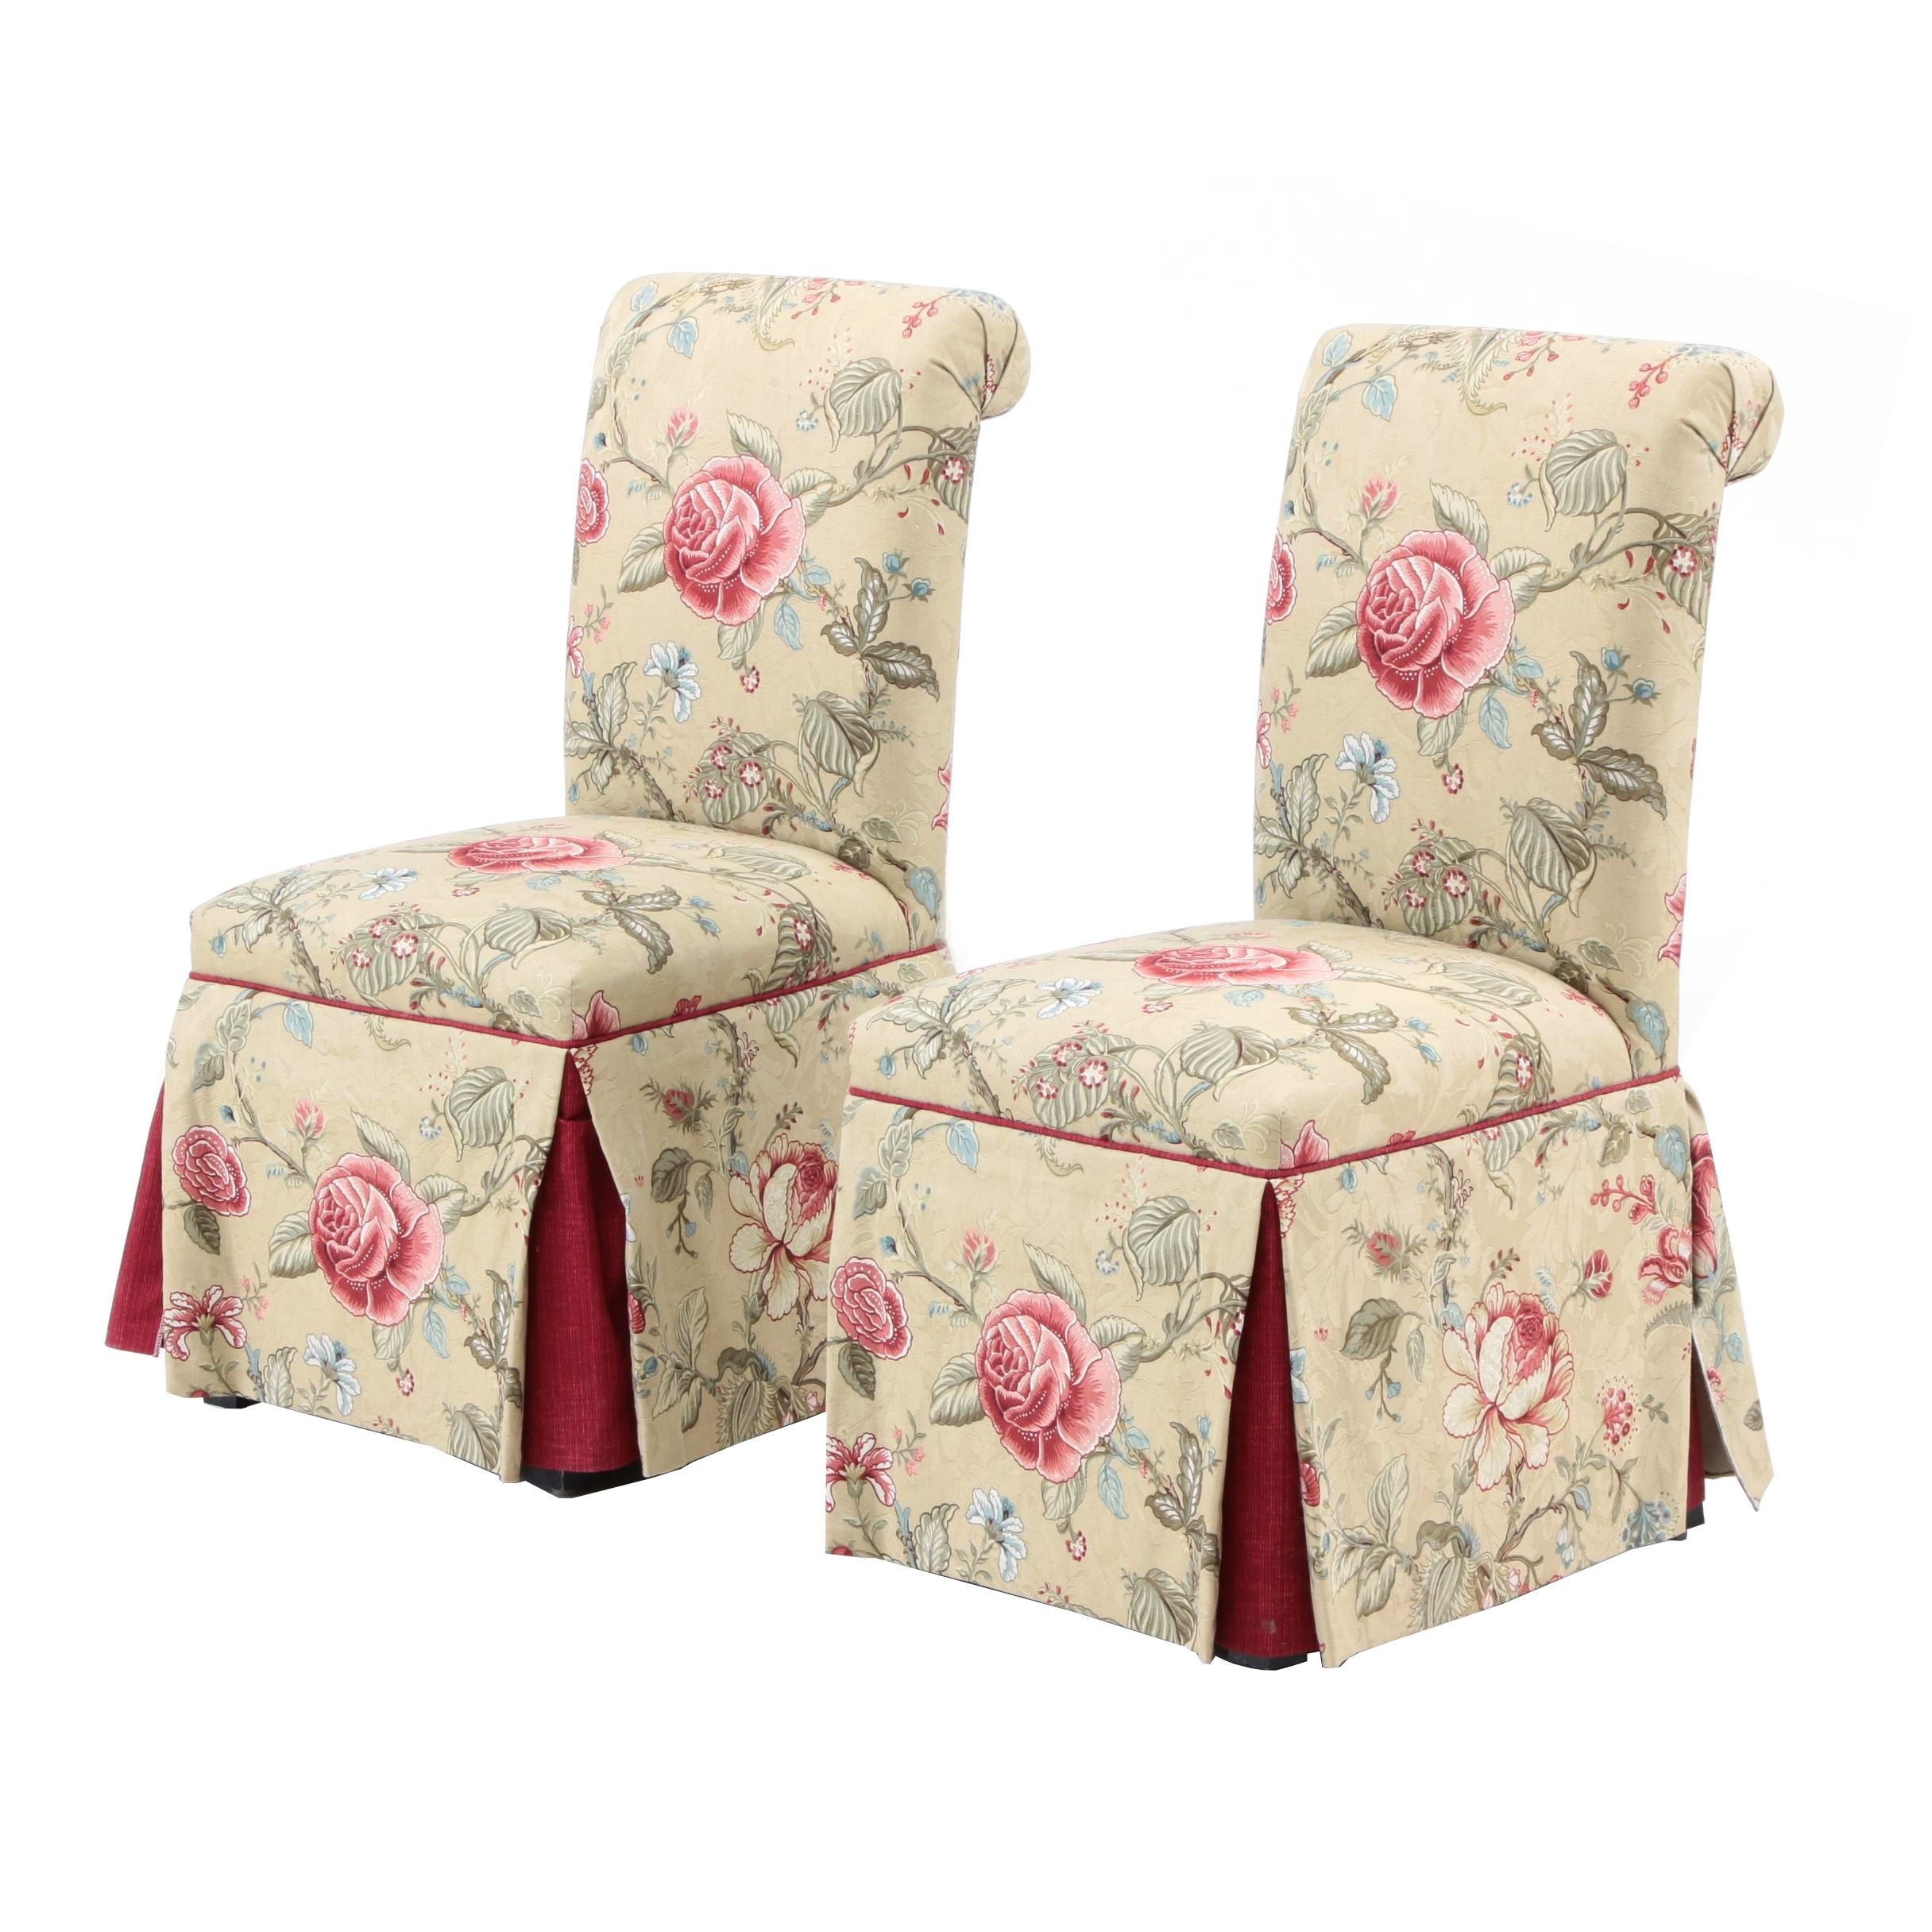 Pair of Floral Upholstered Dining Chairs